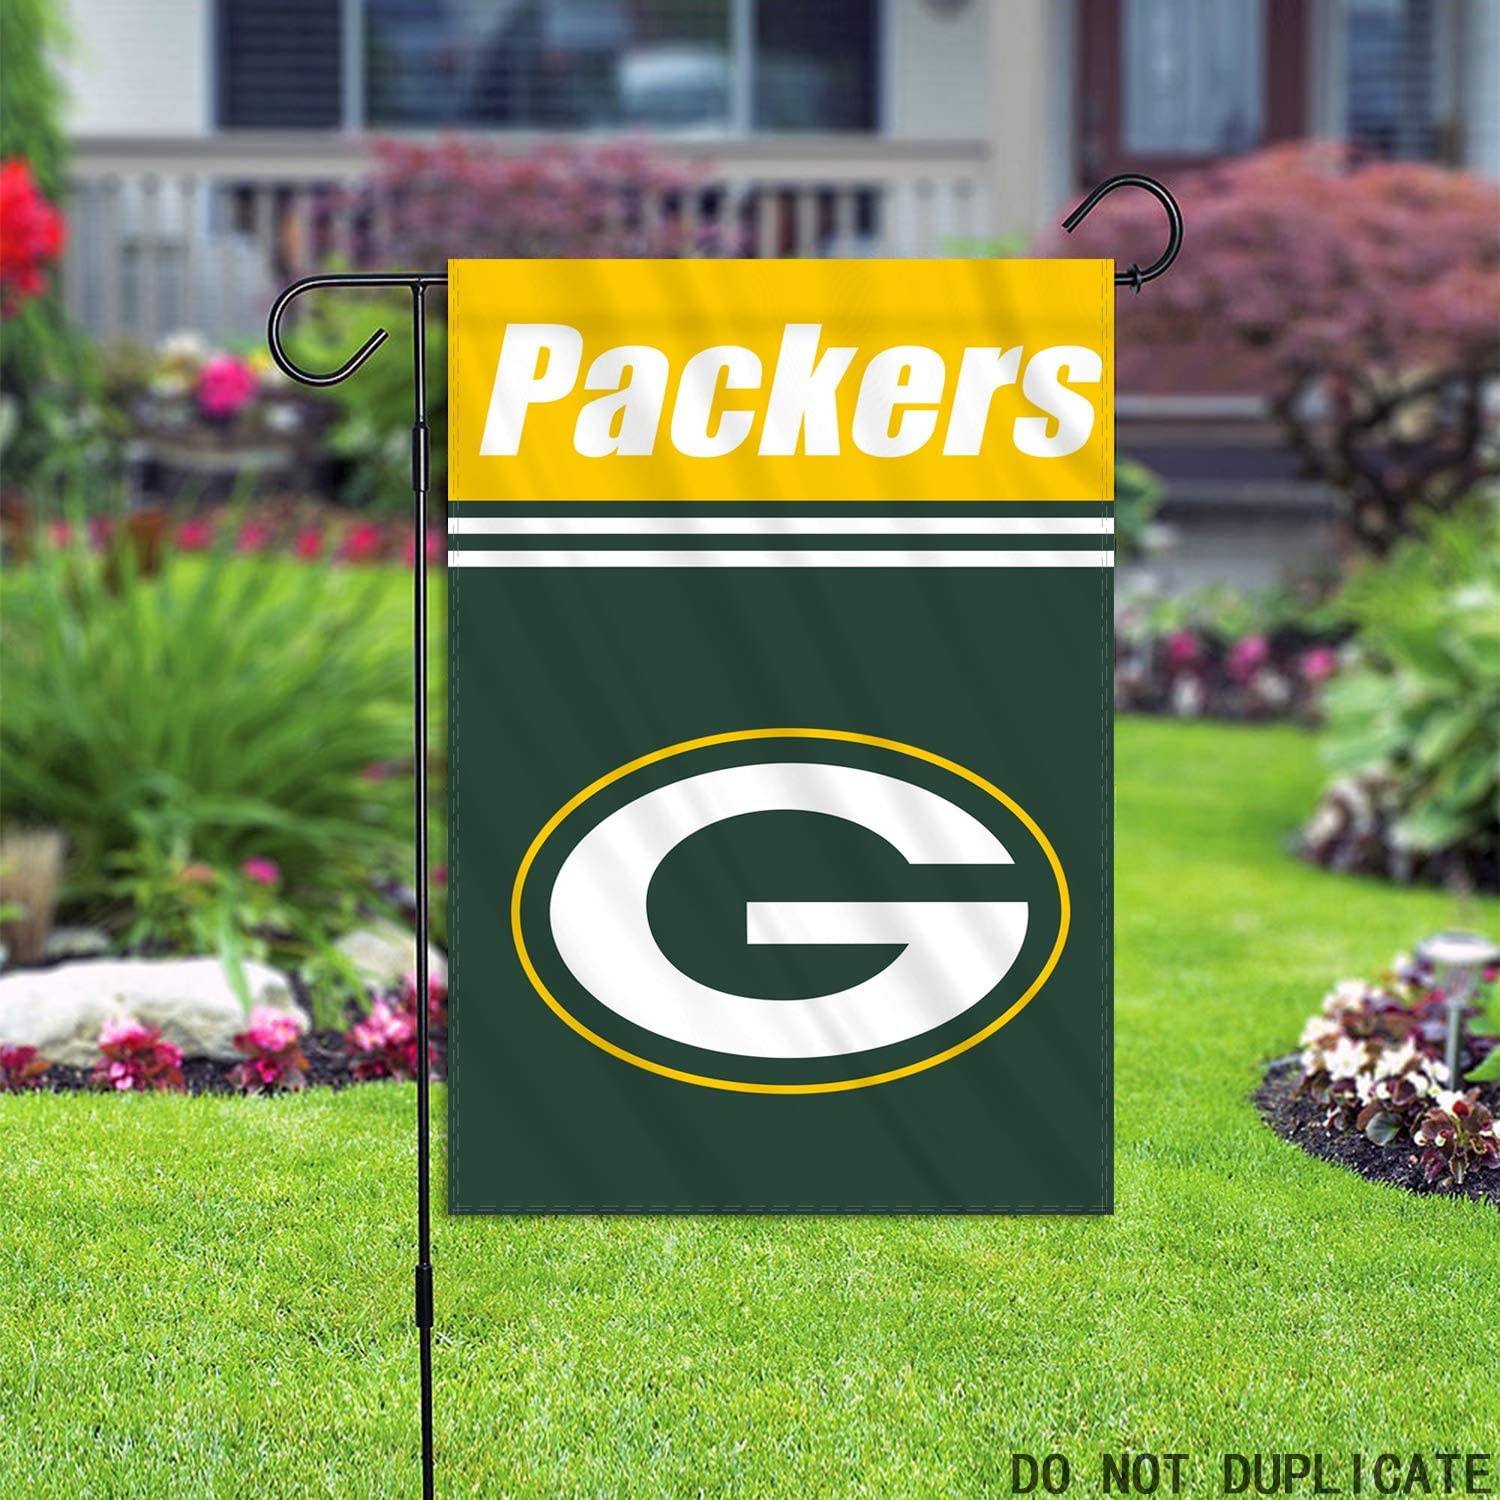 X.NVIOA Green Bay Packers Double Sided and Stitched Garden Flag 12.5 x 18 Inch NFL Banner Spuer Bowl Yard Outdoor Decor